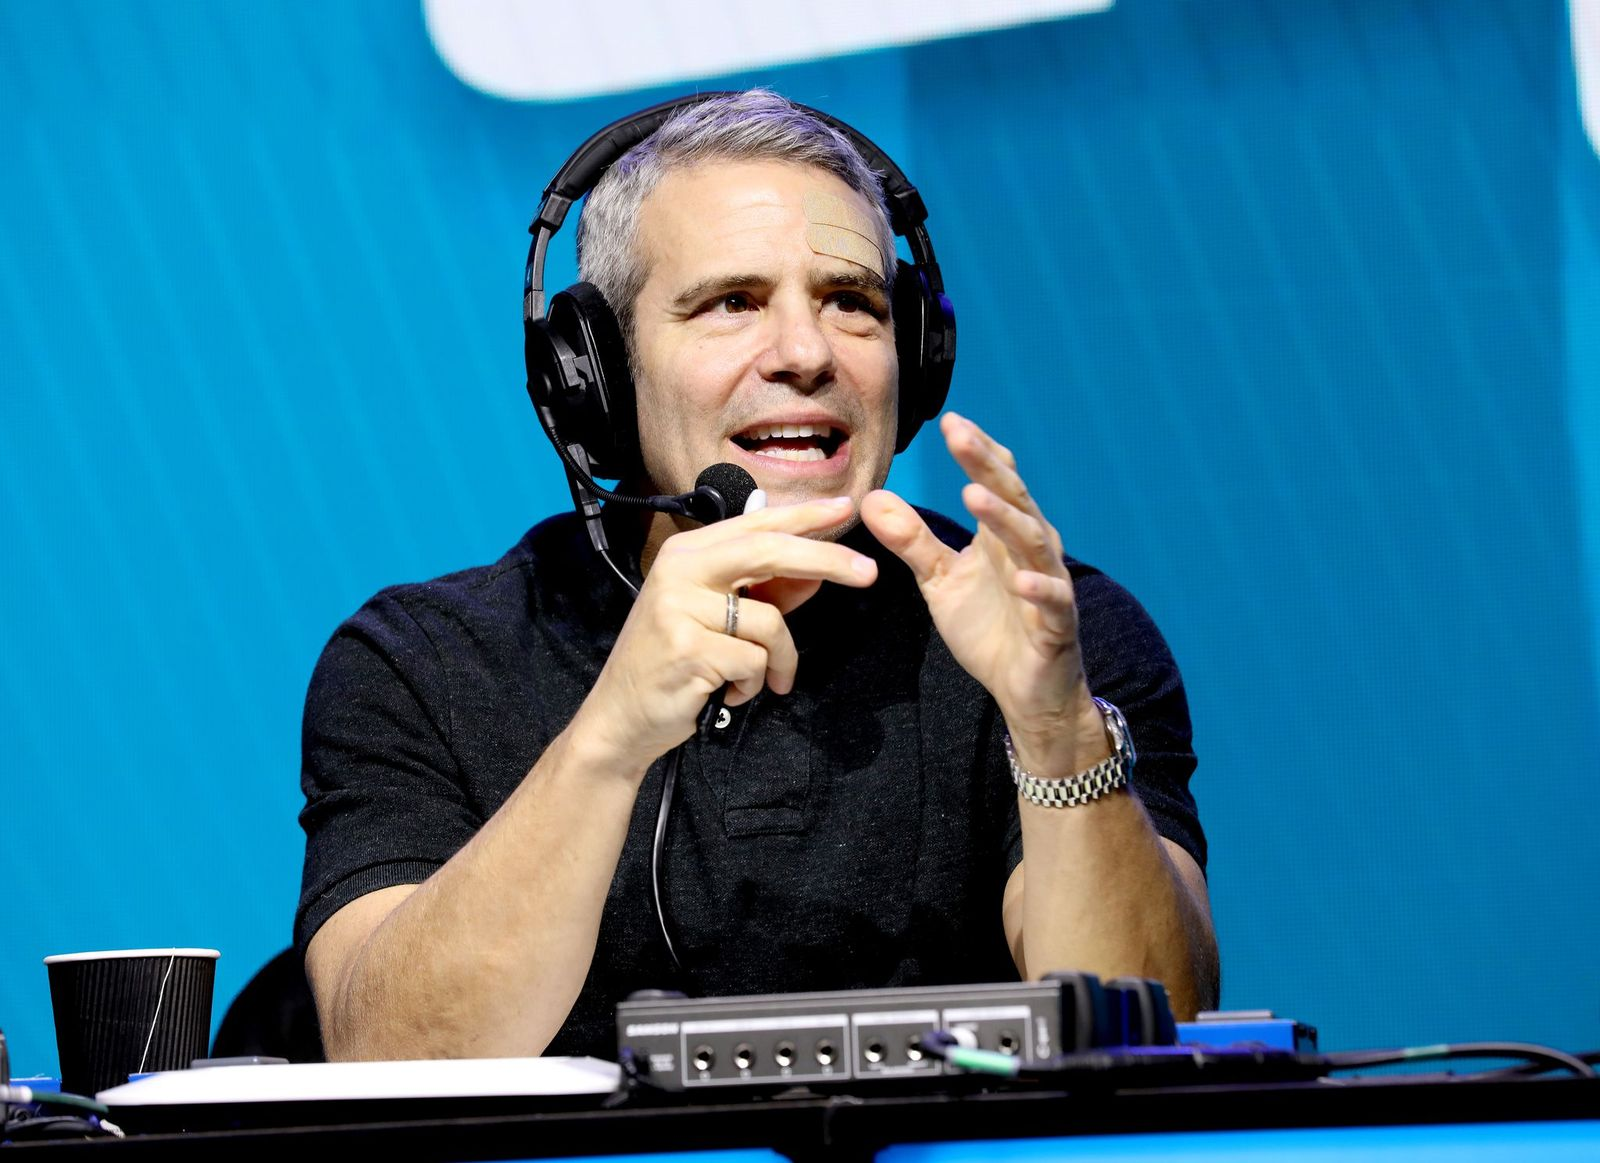 Andy Cohen speaks at the Super Bowl LIV for SiriusXM on January 31, 2020, in Miami, Florida | Photo: Cindy Ord/Getty Images